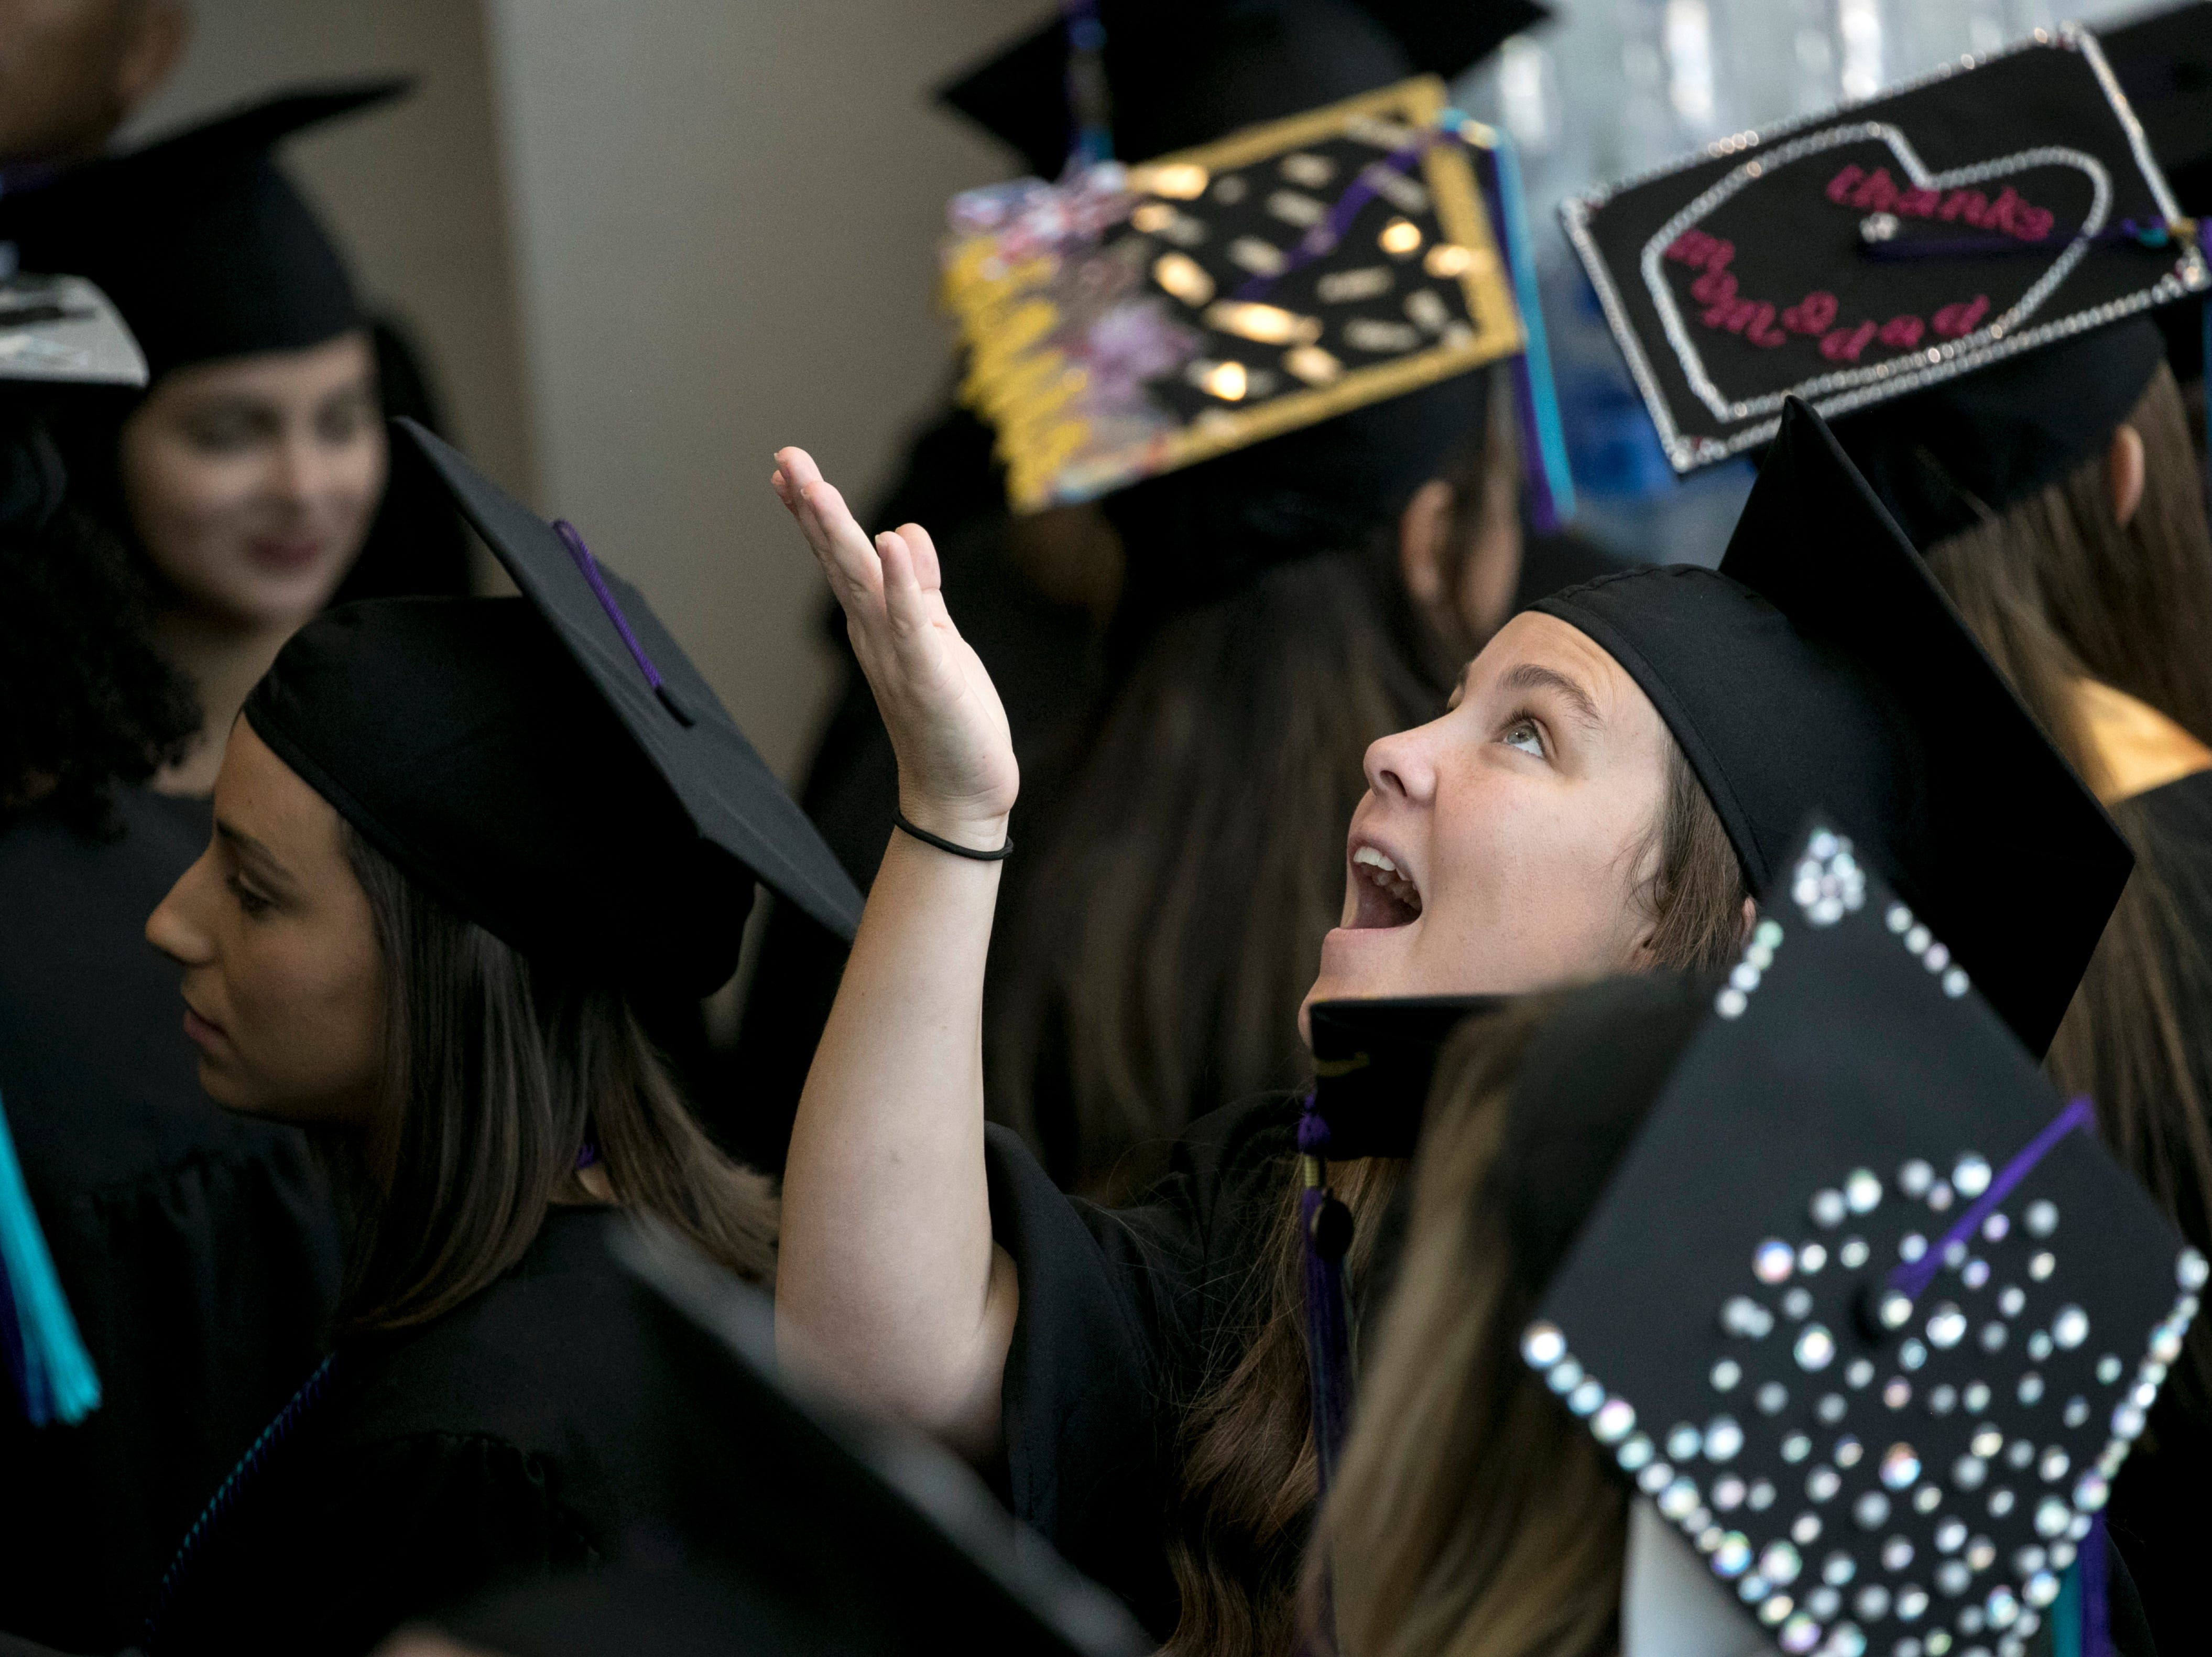 Caitlin McGlynn her graduation from Florida Southwestern State College on Friday, May 3, 2019, in Fort Myers.